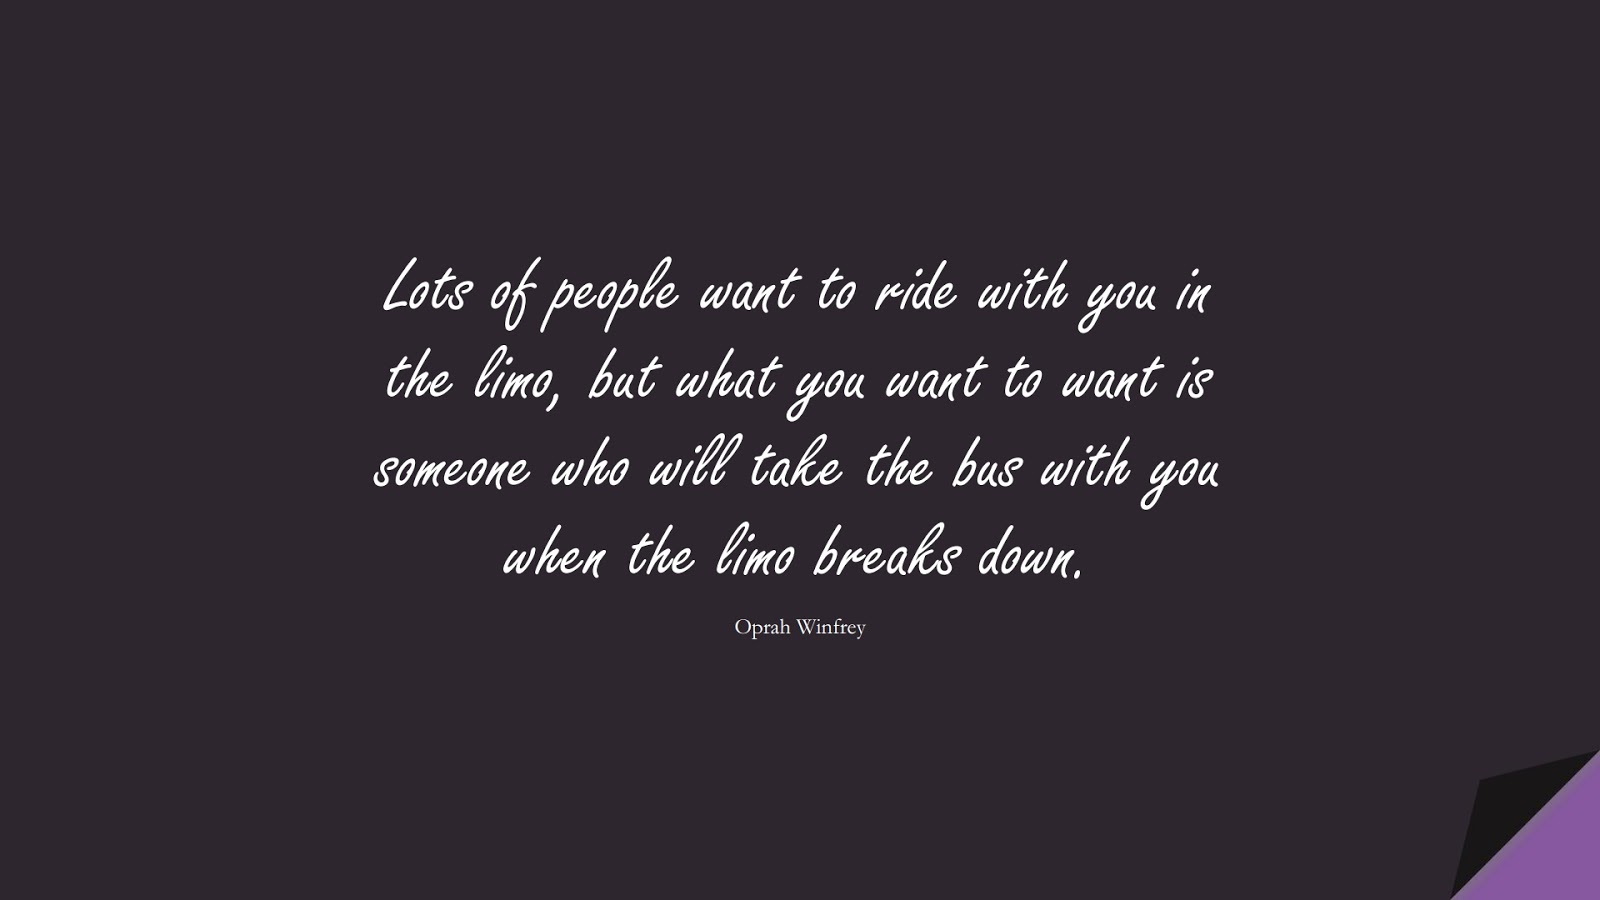 Lots of people want to ride with you in the limo, but what you want to want is someone who will take the bus with you when the limo breaks down. (Oprah Winfrey);  #FriendshipQuotes